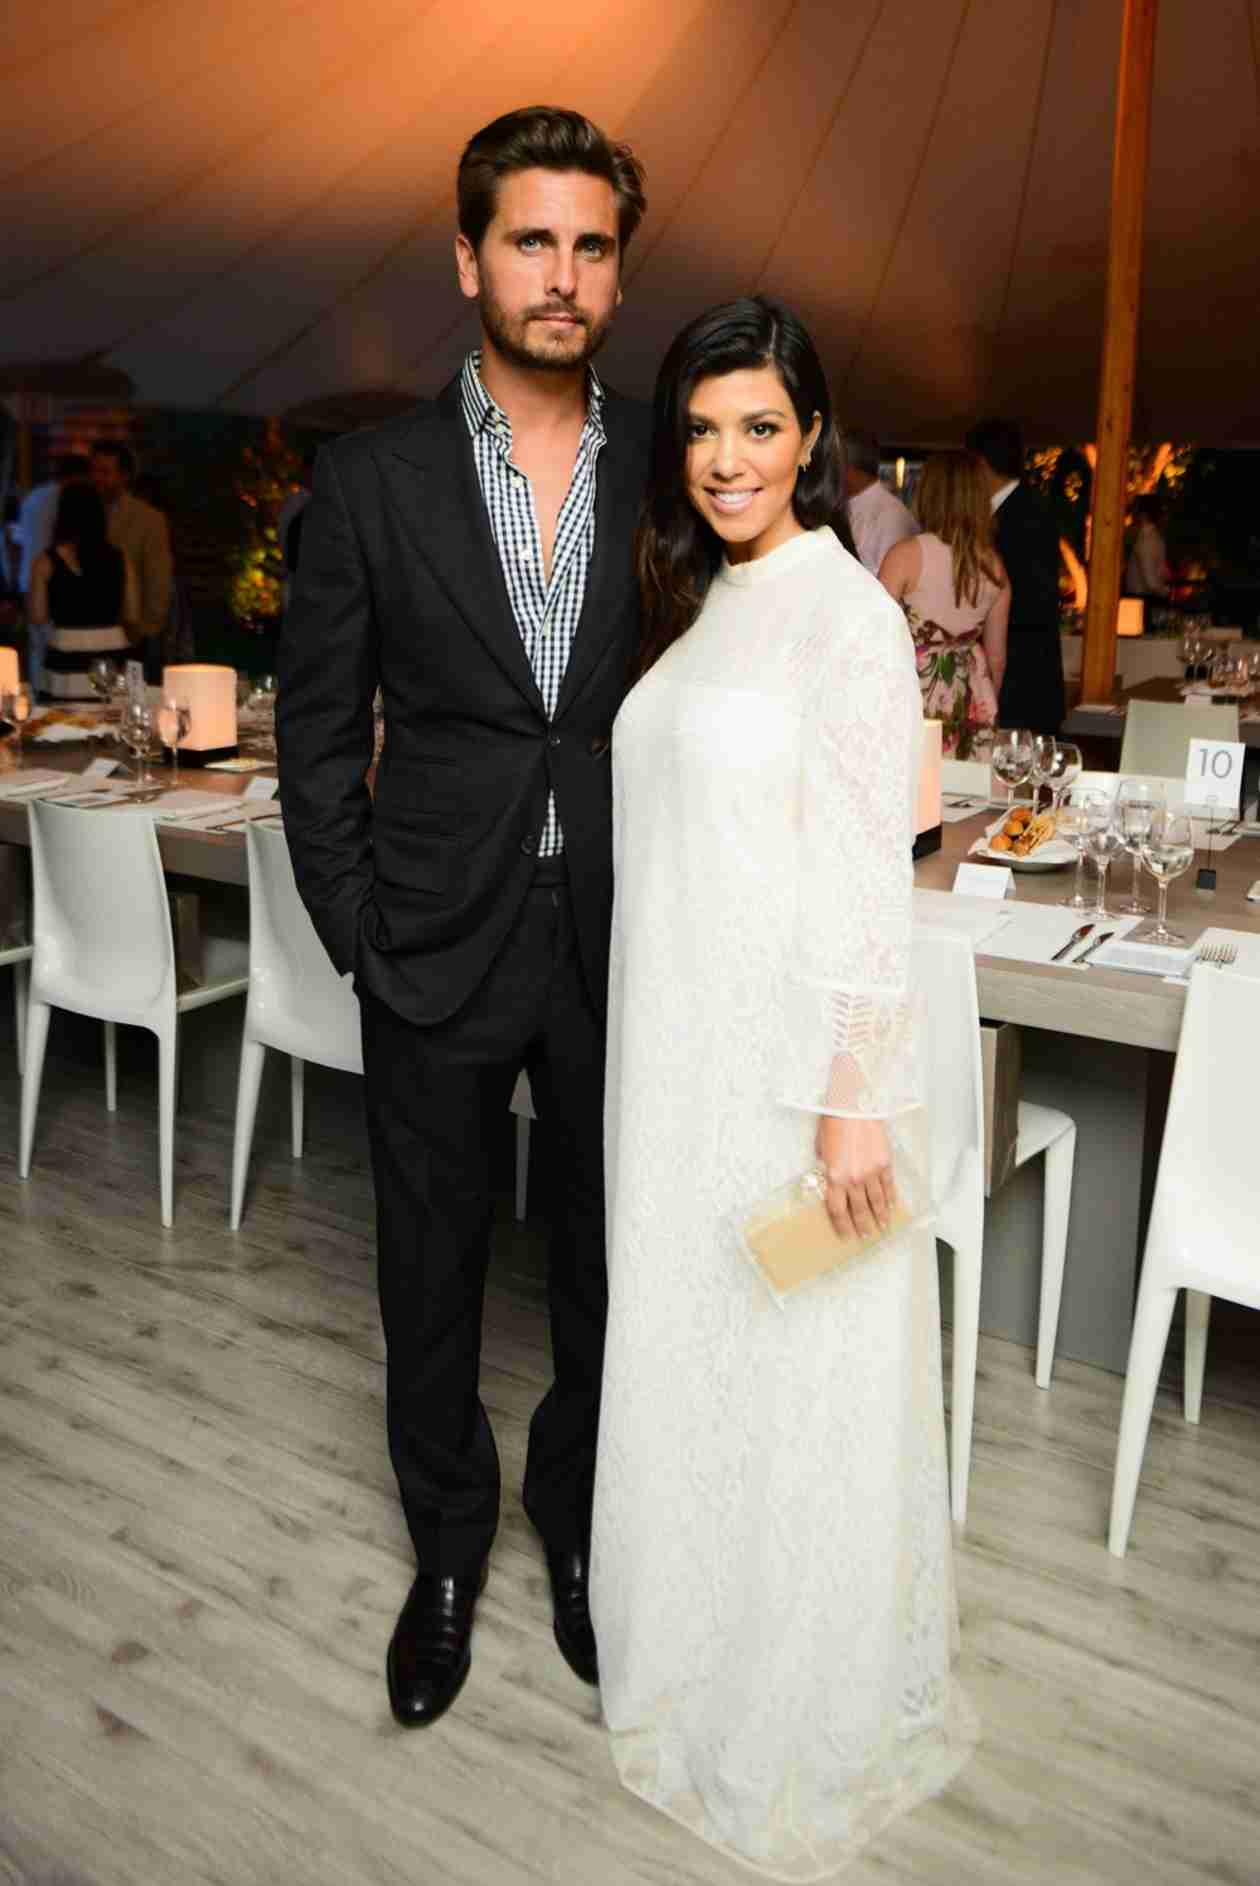 Kourtney Kardashian Shows Off Pregnancy Glow with Dapper Scott Disick (PHOTO)